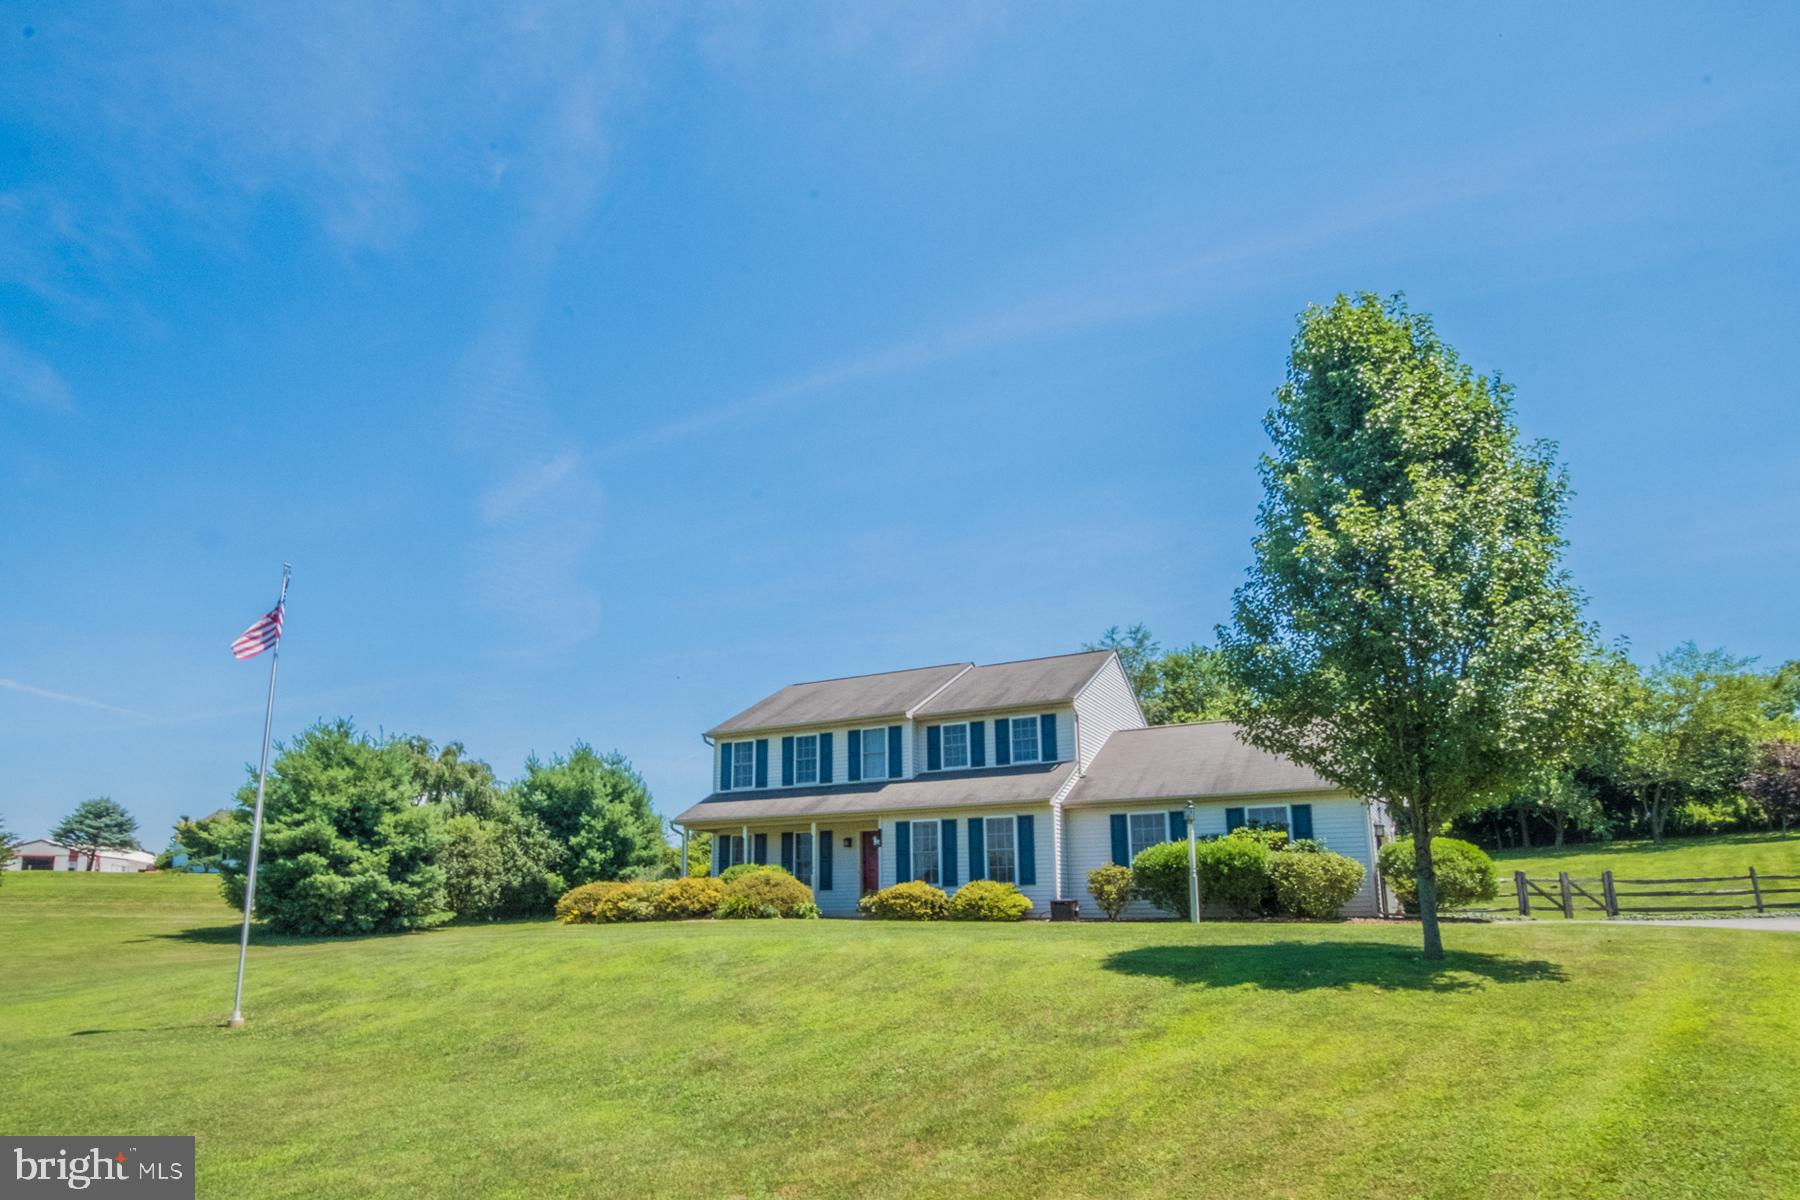 104 PEAR LANE, PEACH BOTTOM, PA 17563